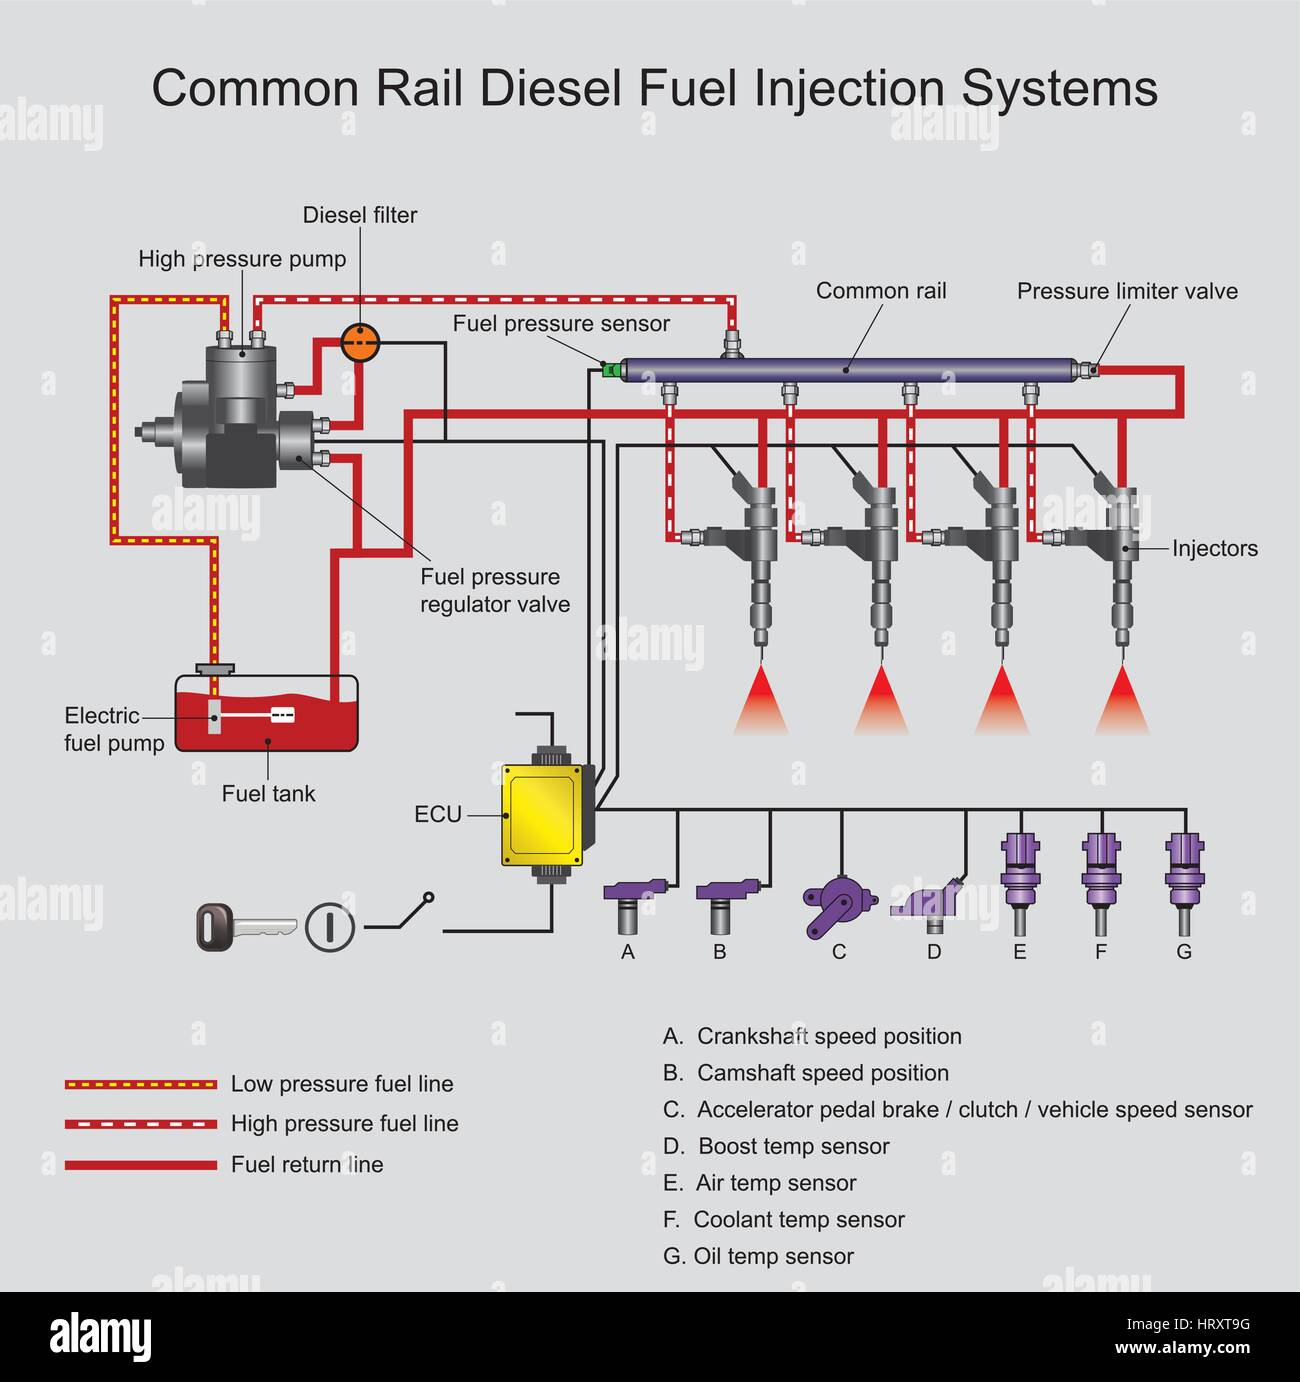 Stock Photo  mon Rail Direct Fuel Injection Is A Direct Fuel Injection System 135199500 on ecu schematic diagram